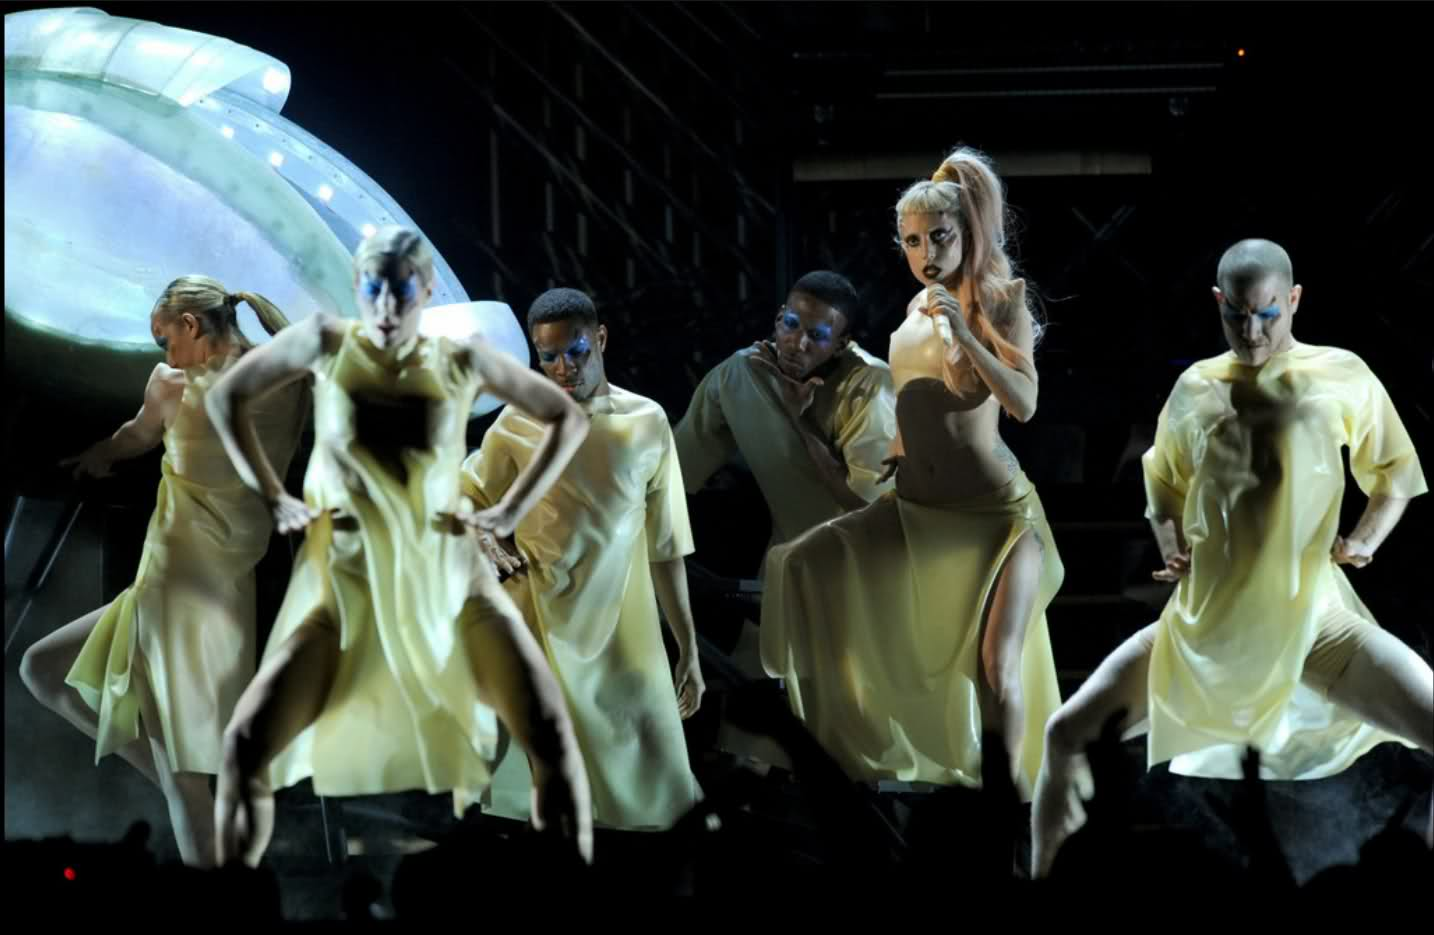 lady-gaga-born-this-way-grammy-performance-2011-billboard-hot-100-number-1-egg1